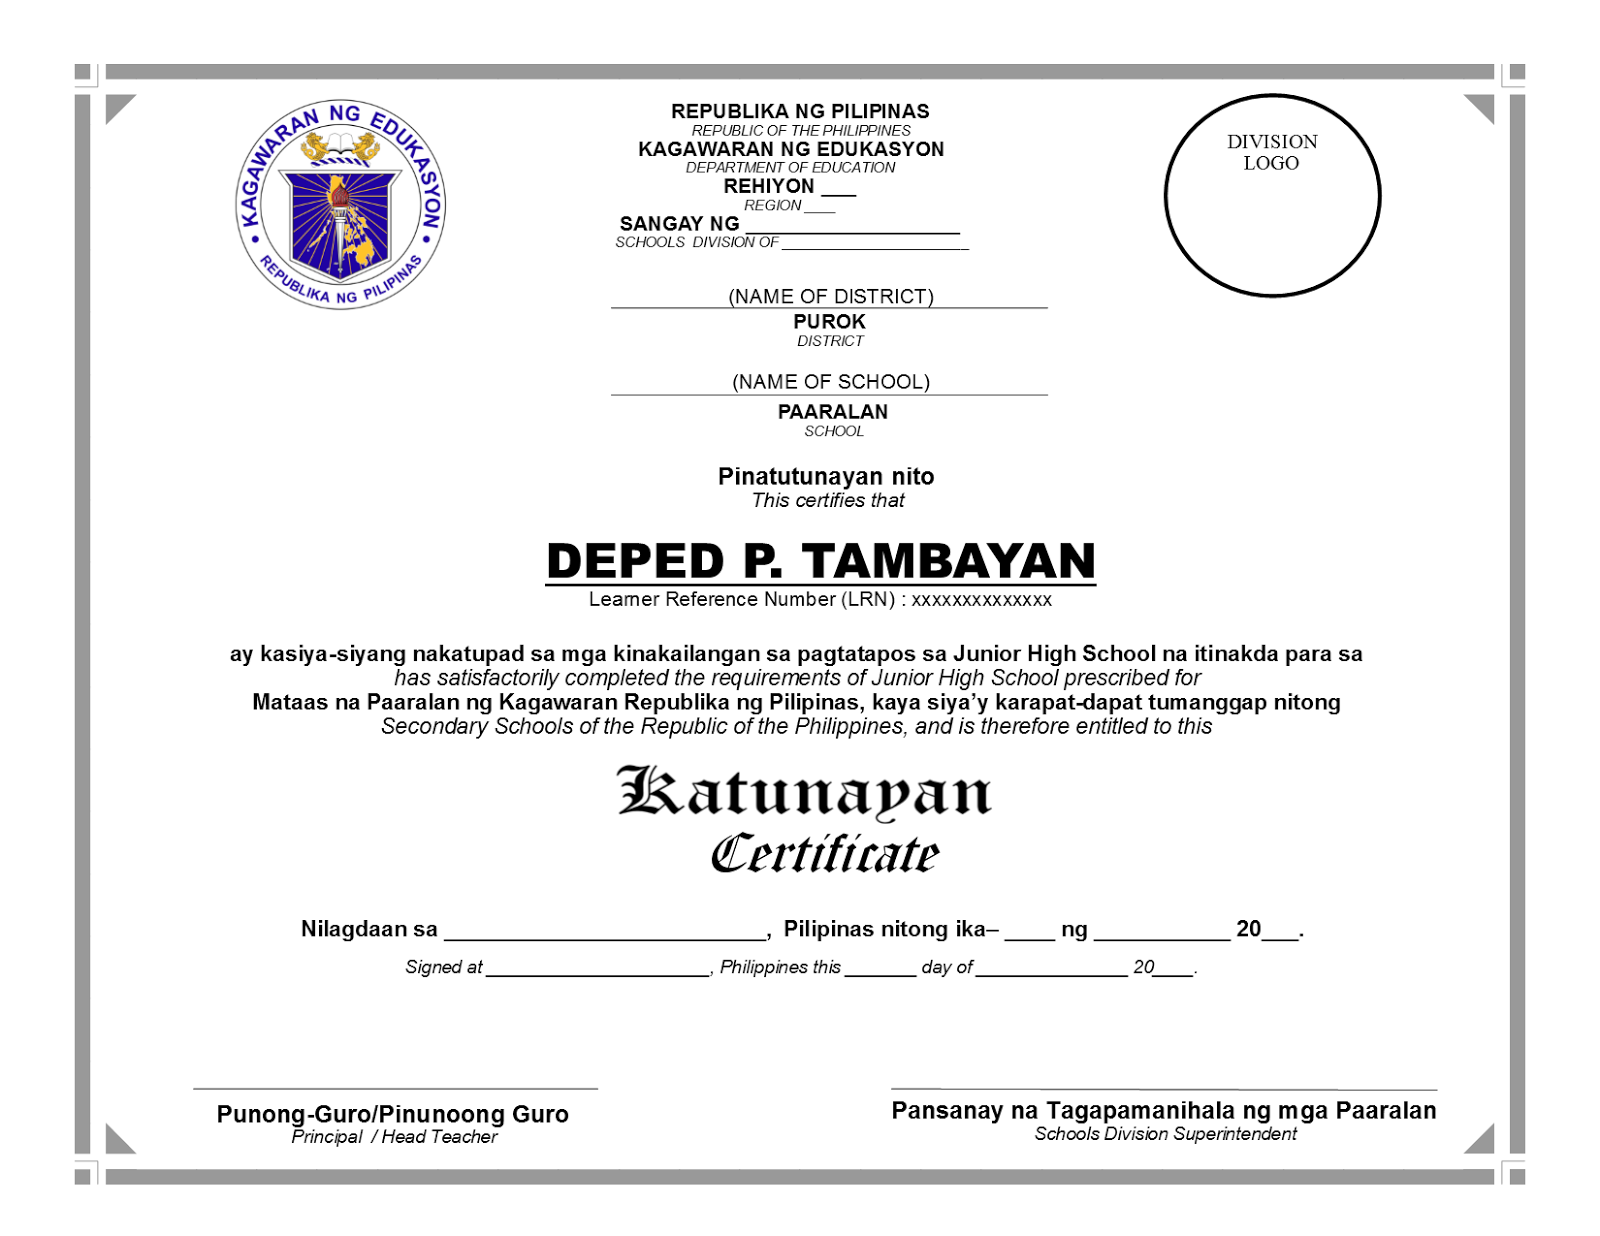 Deped tambayan ph new templates for grade 6 and 10 certificate of deped tambayan ph new templates for grade 6 and 10 certificate of completion yadclub